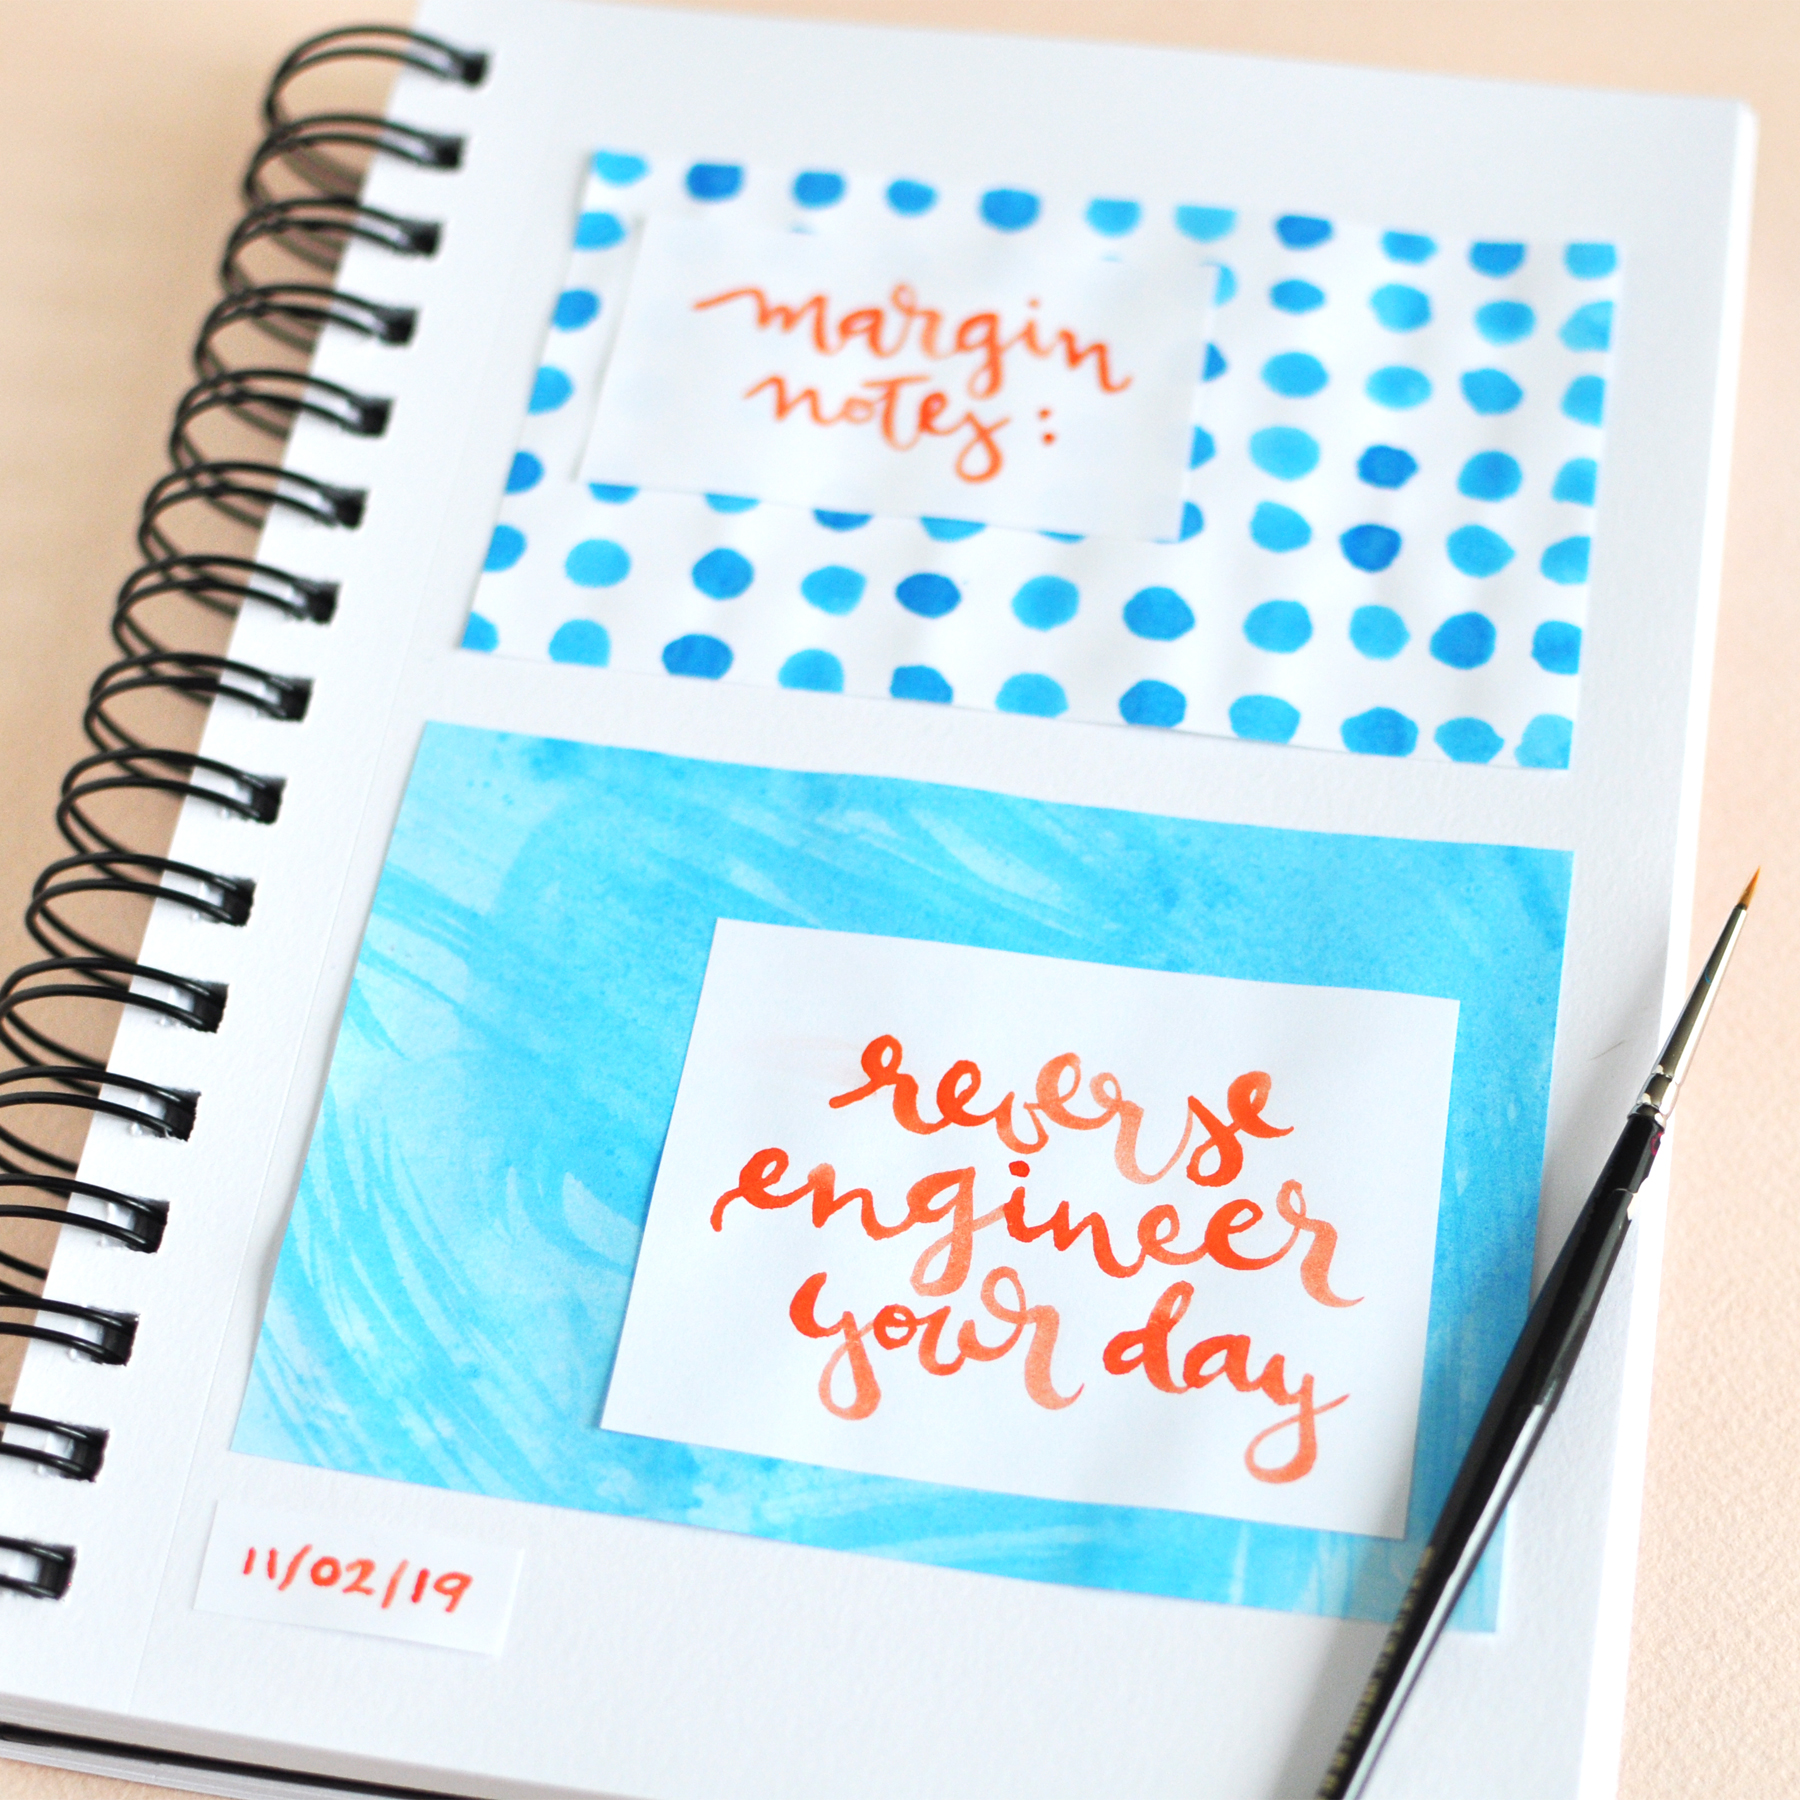 11-02-2019-Printable-Journal-Page-by-Christie-Zimmer.jpg